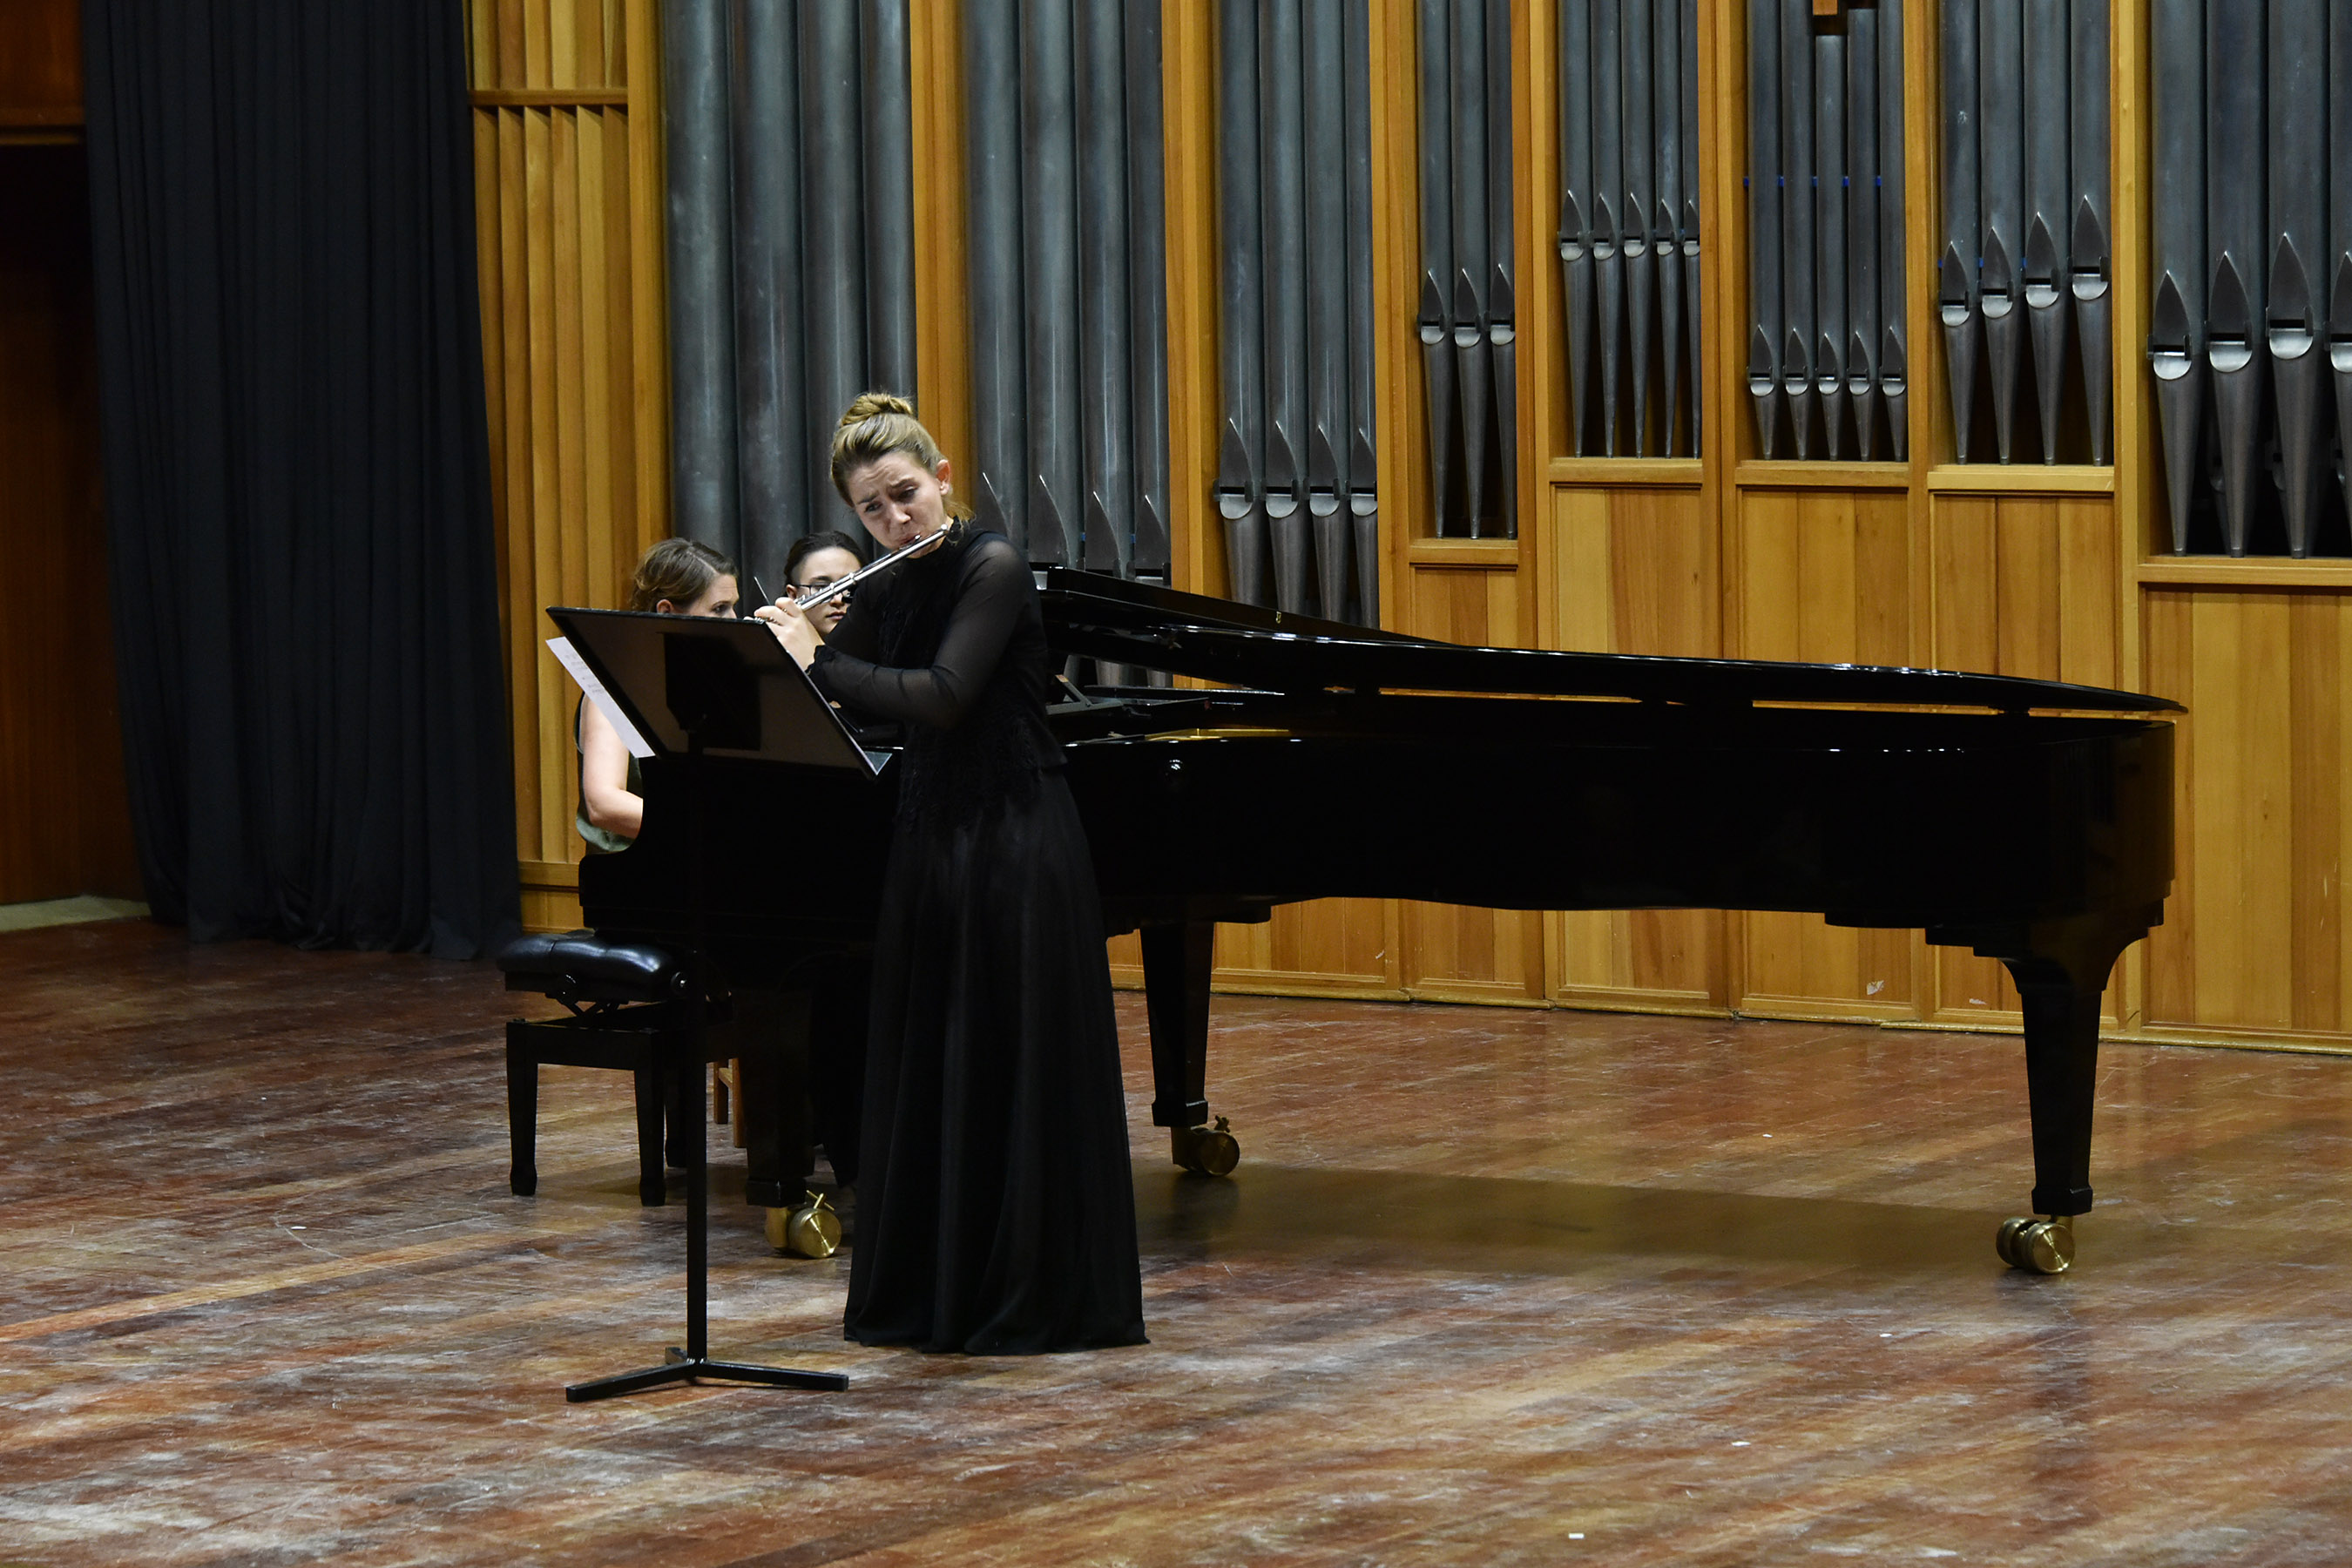 Nina Cilliers (Flute) and Lesley-Ann Matthews (Piano)